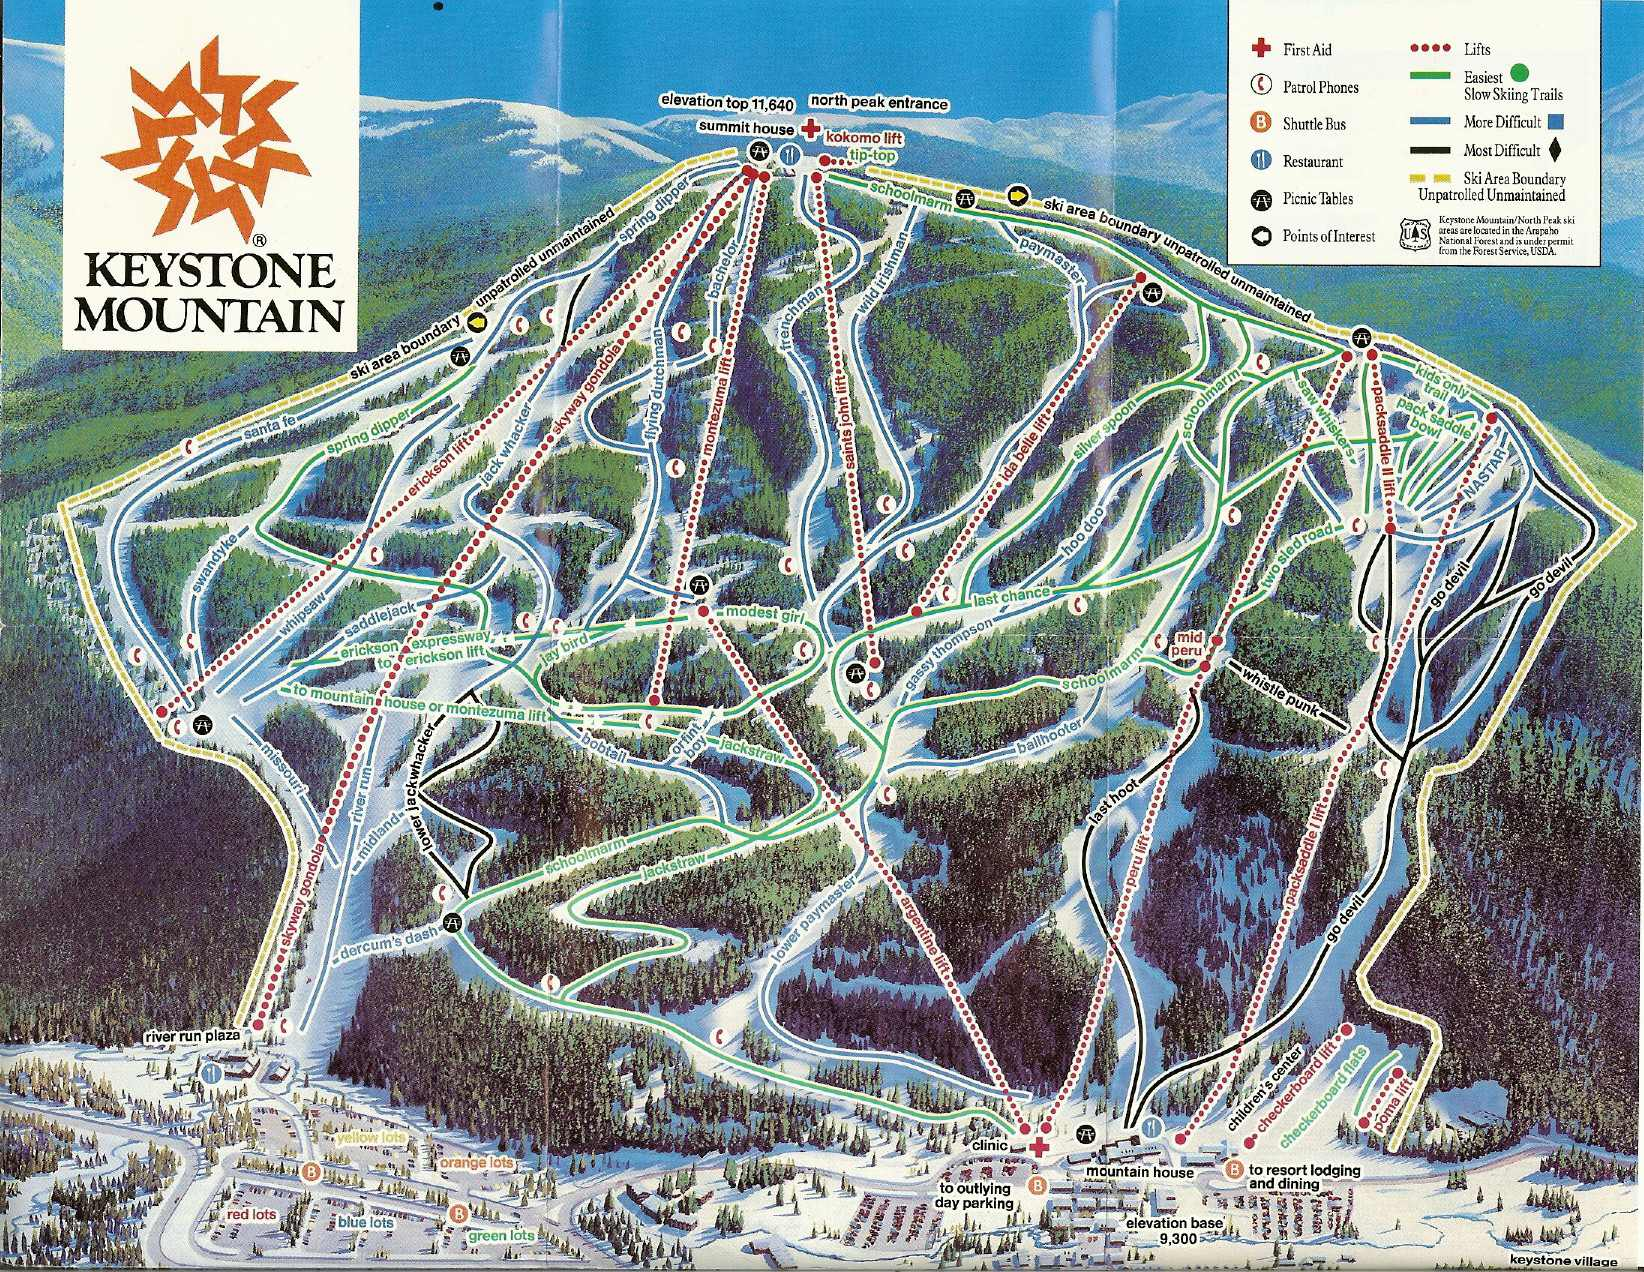 Keystone Resort Map Keystone Resort   SkiMap.org